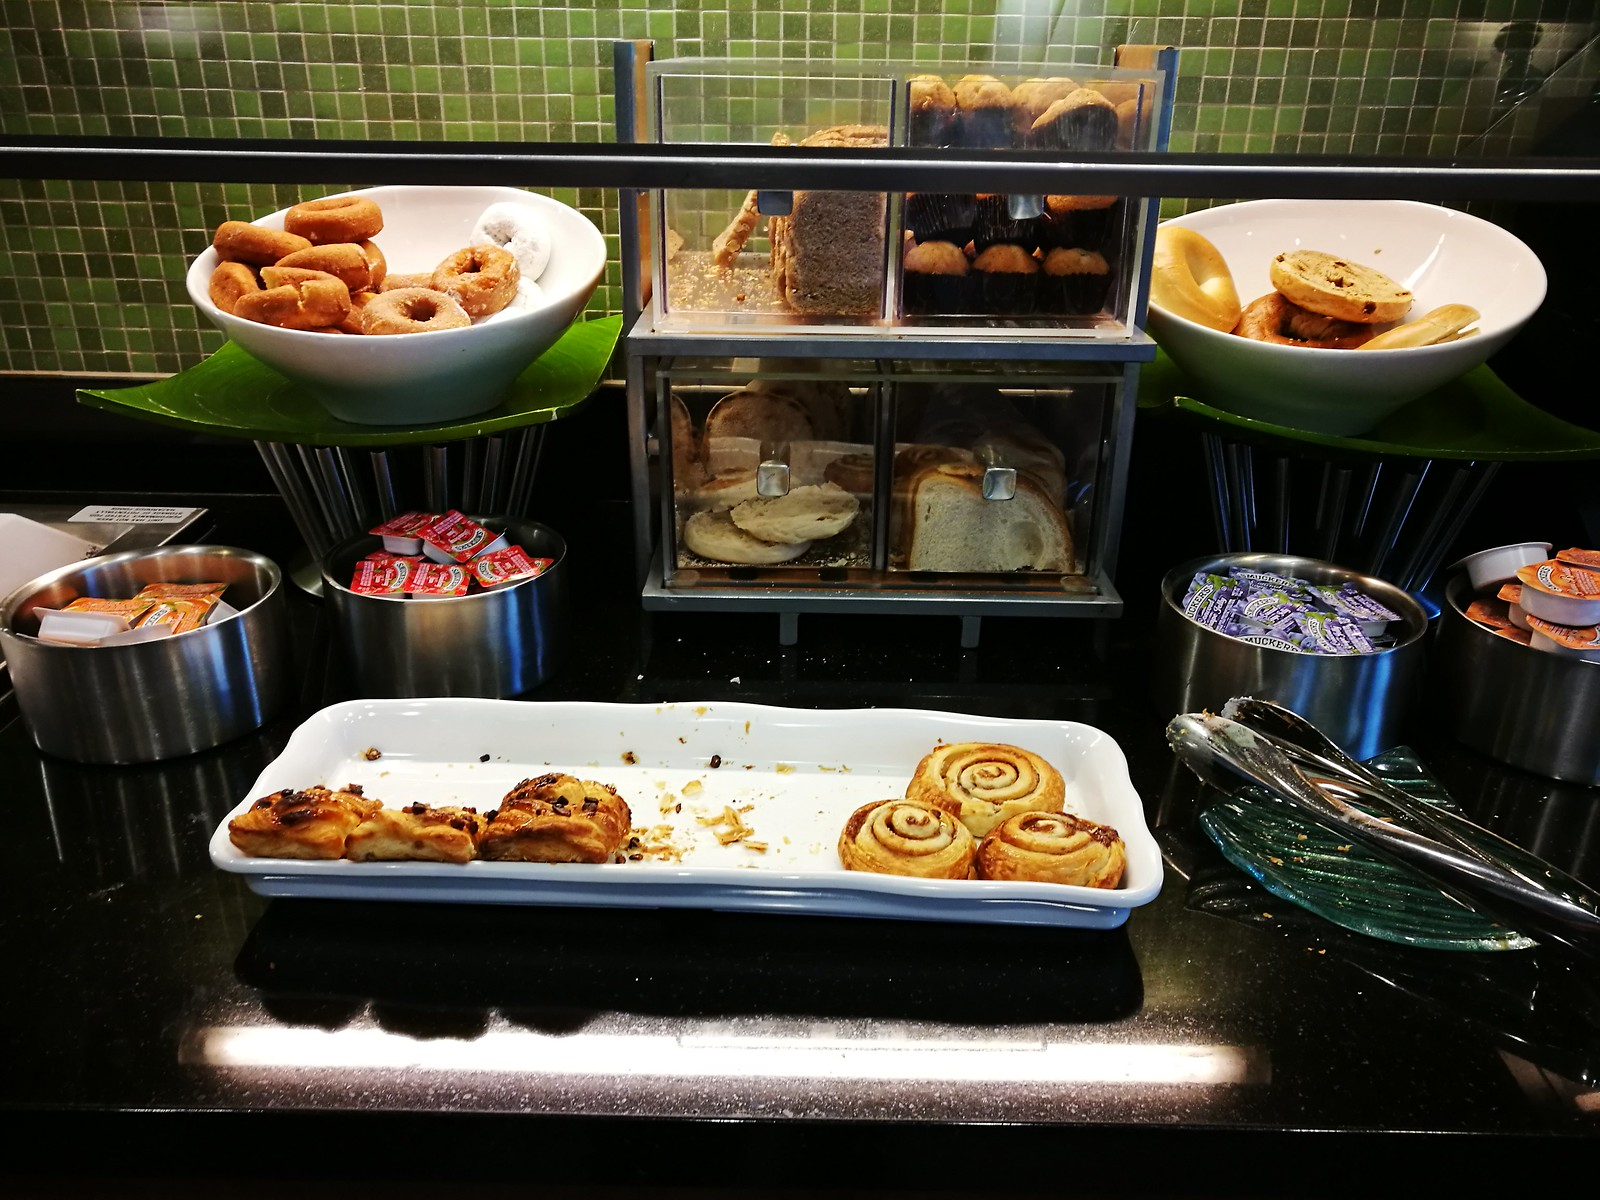 Pastries and toast